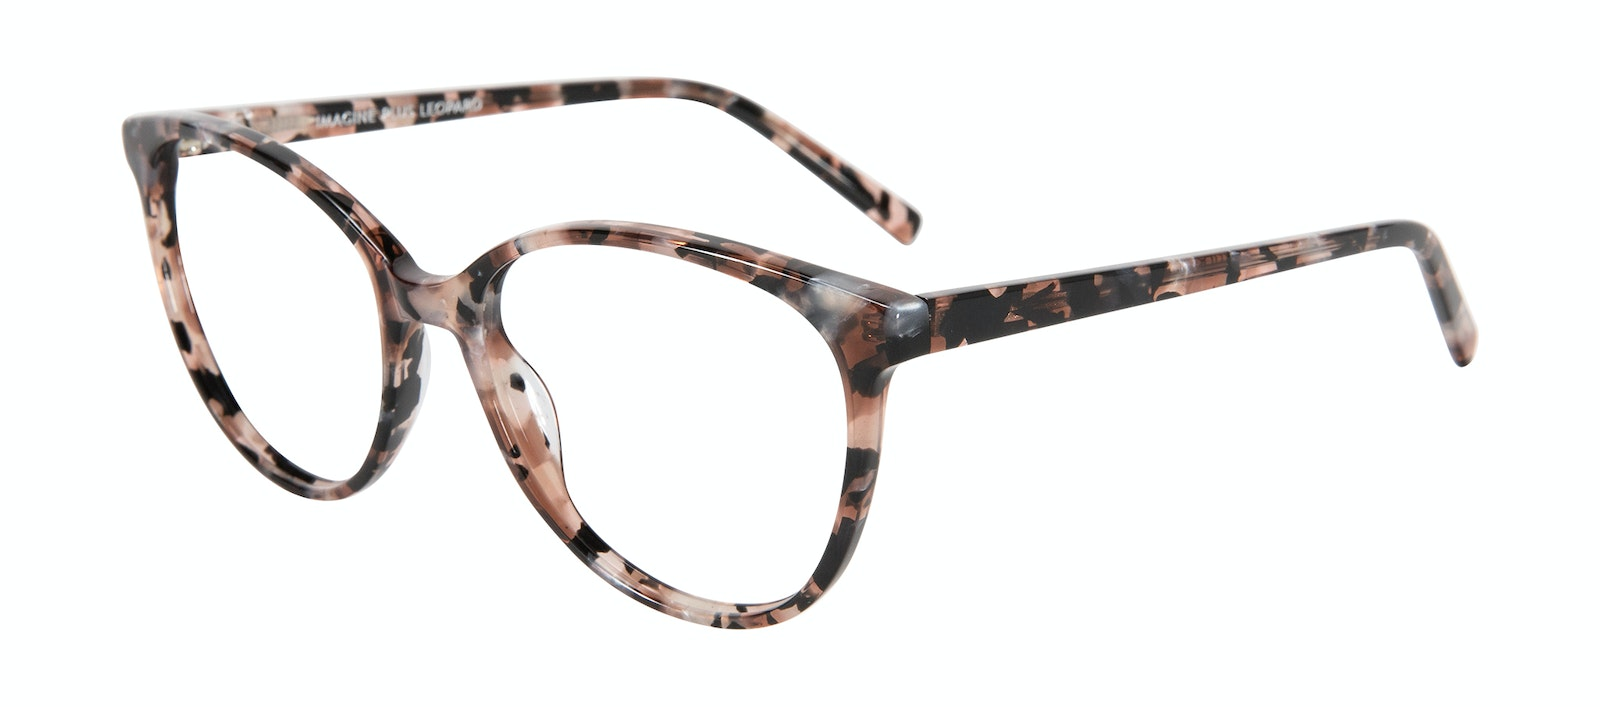 Affordable Fashion Glasses Cat Eye Eyeglasses Women Imagine Plus Pink Tortoise Tilt